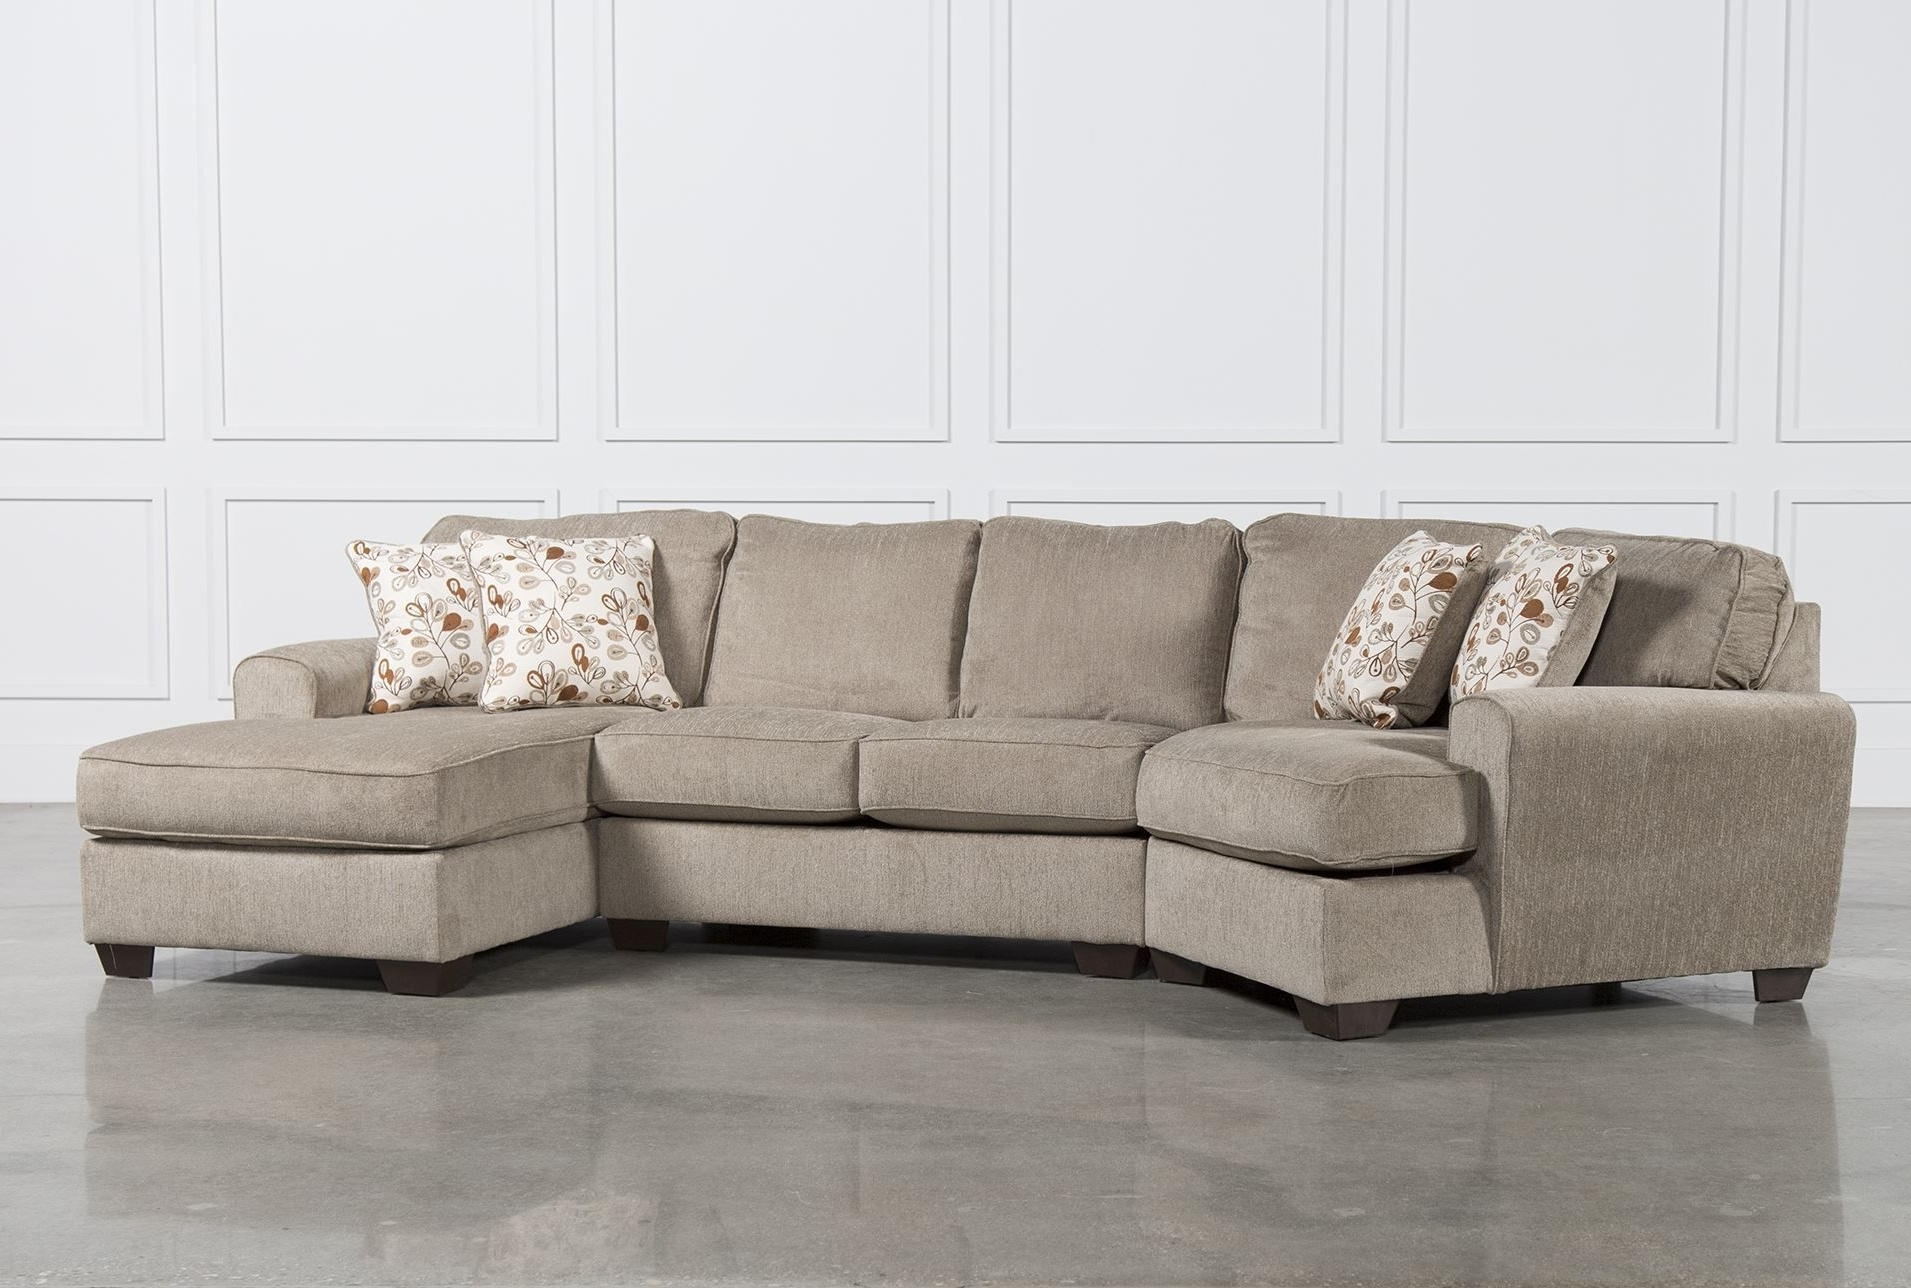 Patola Park 3 Piece Cuddler Sectional W/raf Corner Chaise (View 10 of 15)